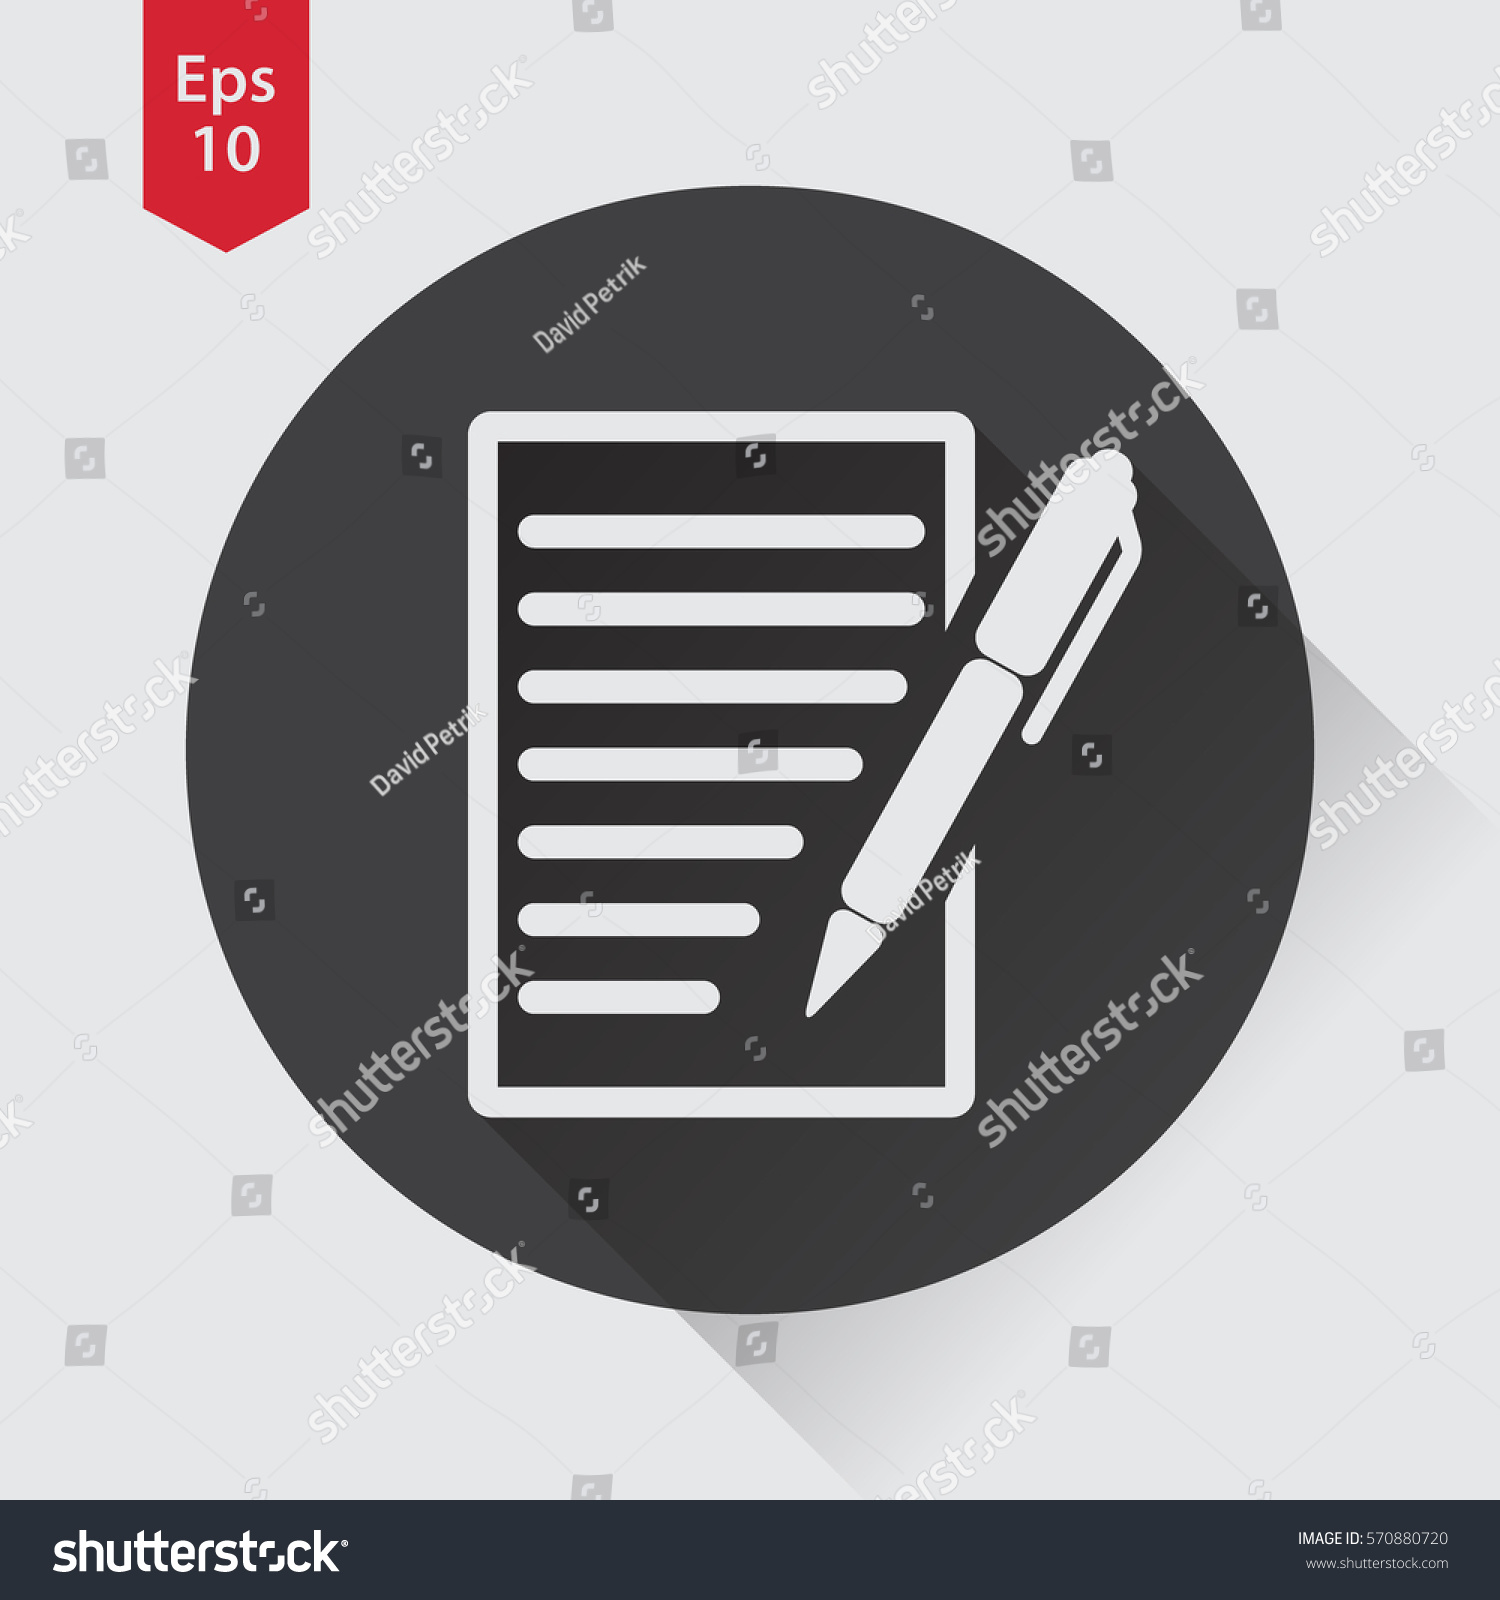 Notepad symbol simple flat icon paper stock vector 570880720 notepad symbol simple flat icon of paper and pen notebook with some text biocorpaavc Choice Image